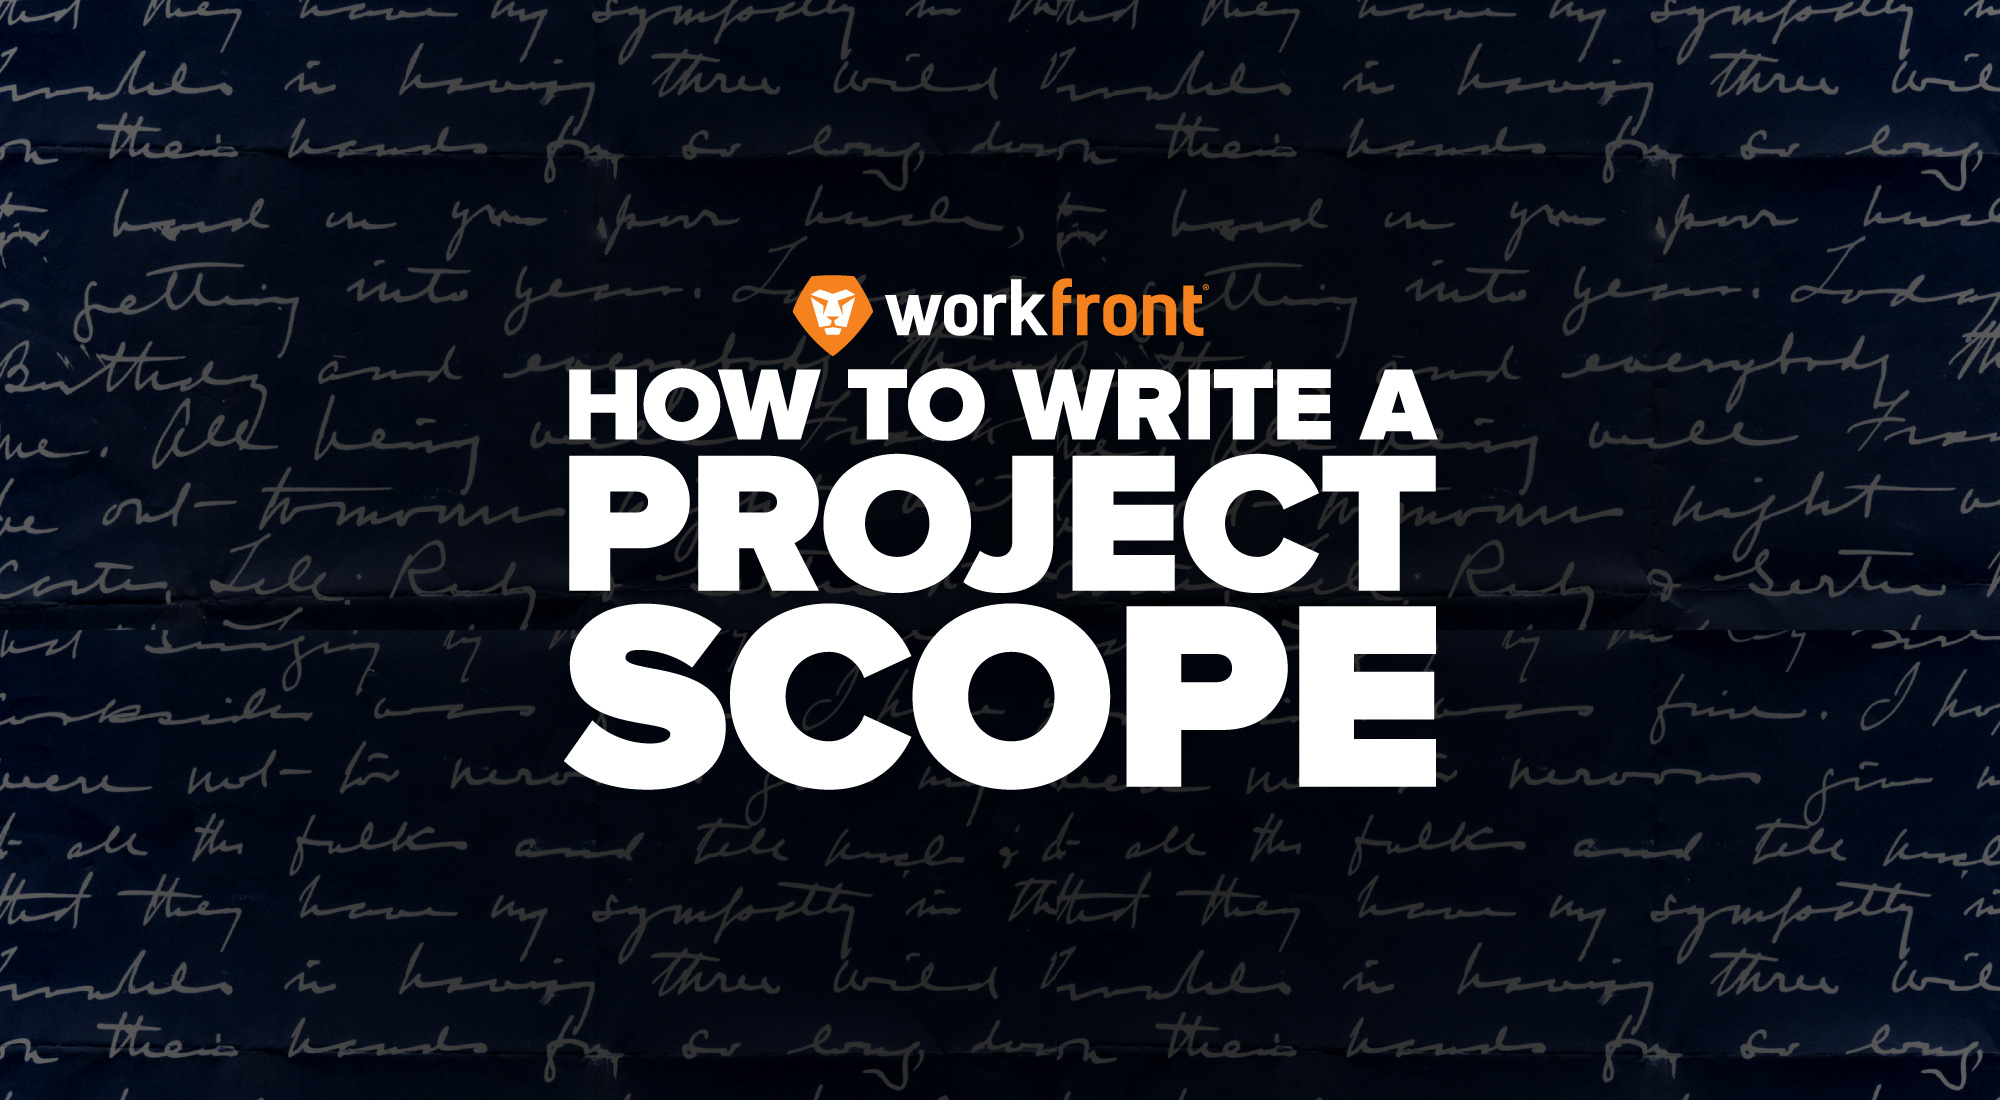 Writing a project scope